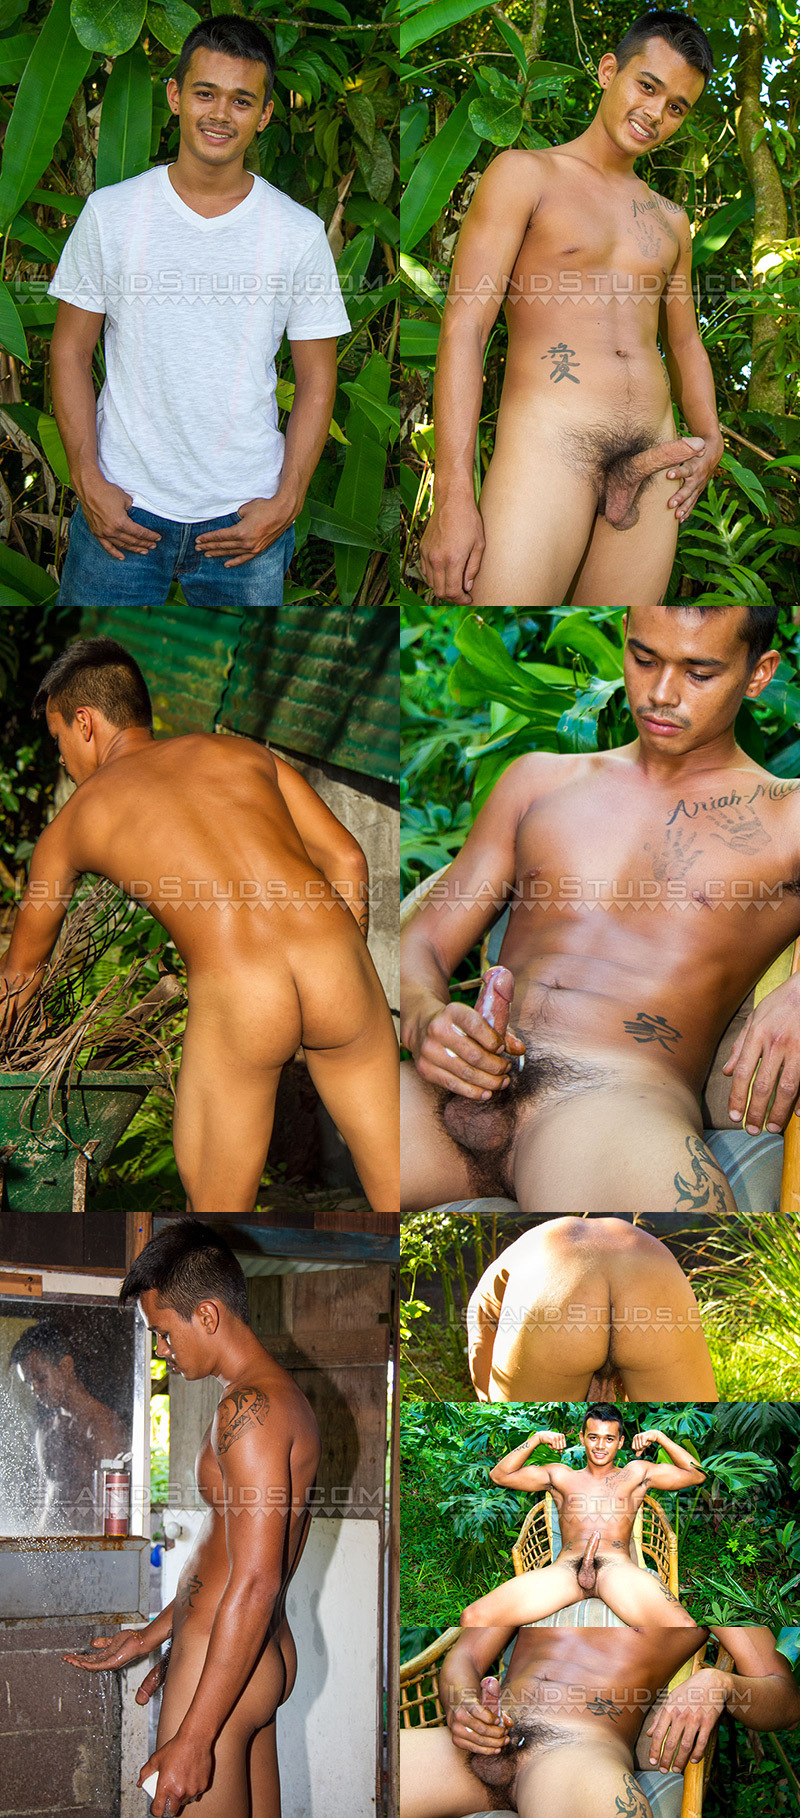 Filipino Nudist Twink High-school Wrestler Akoni